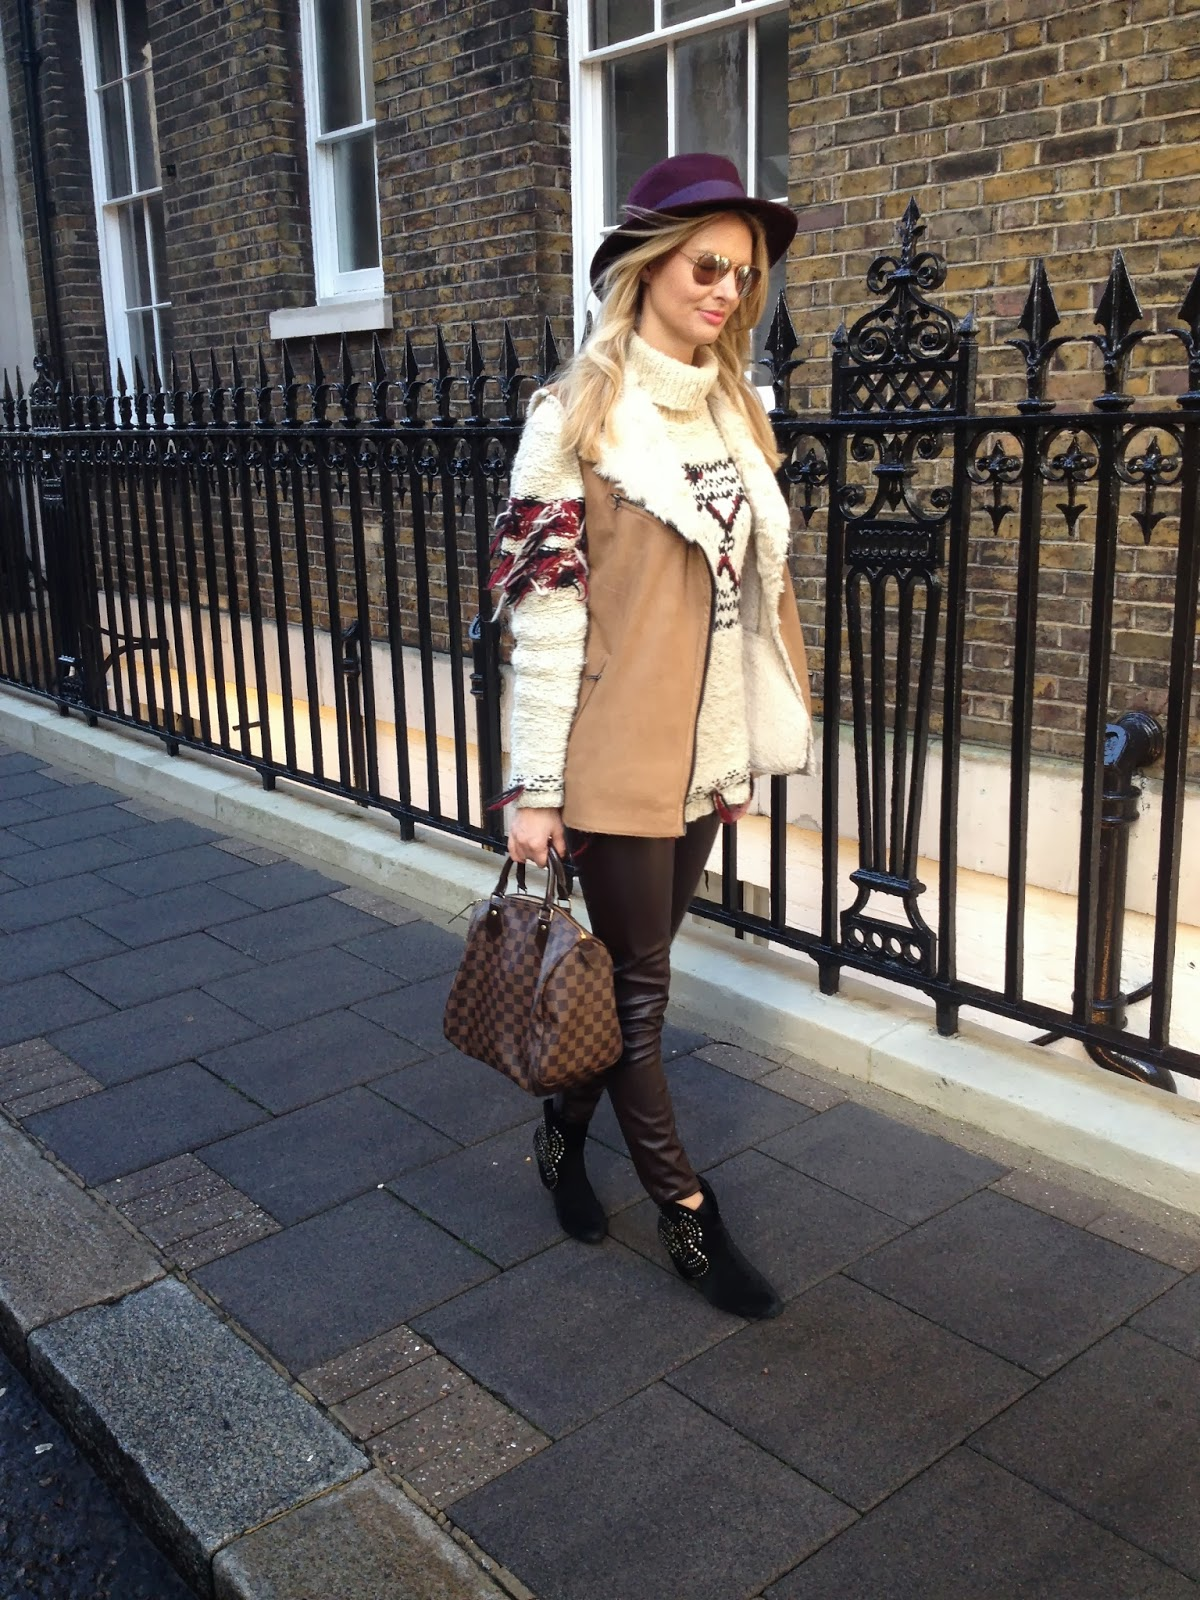 chrissabella, blogger, fashion blogger chrissabella